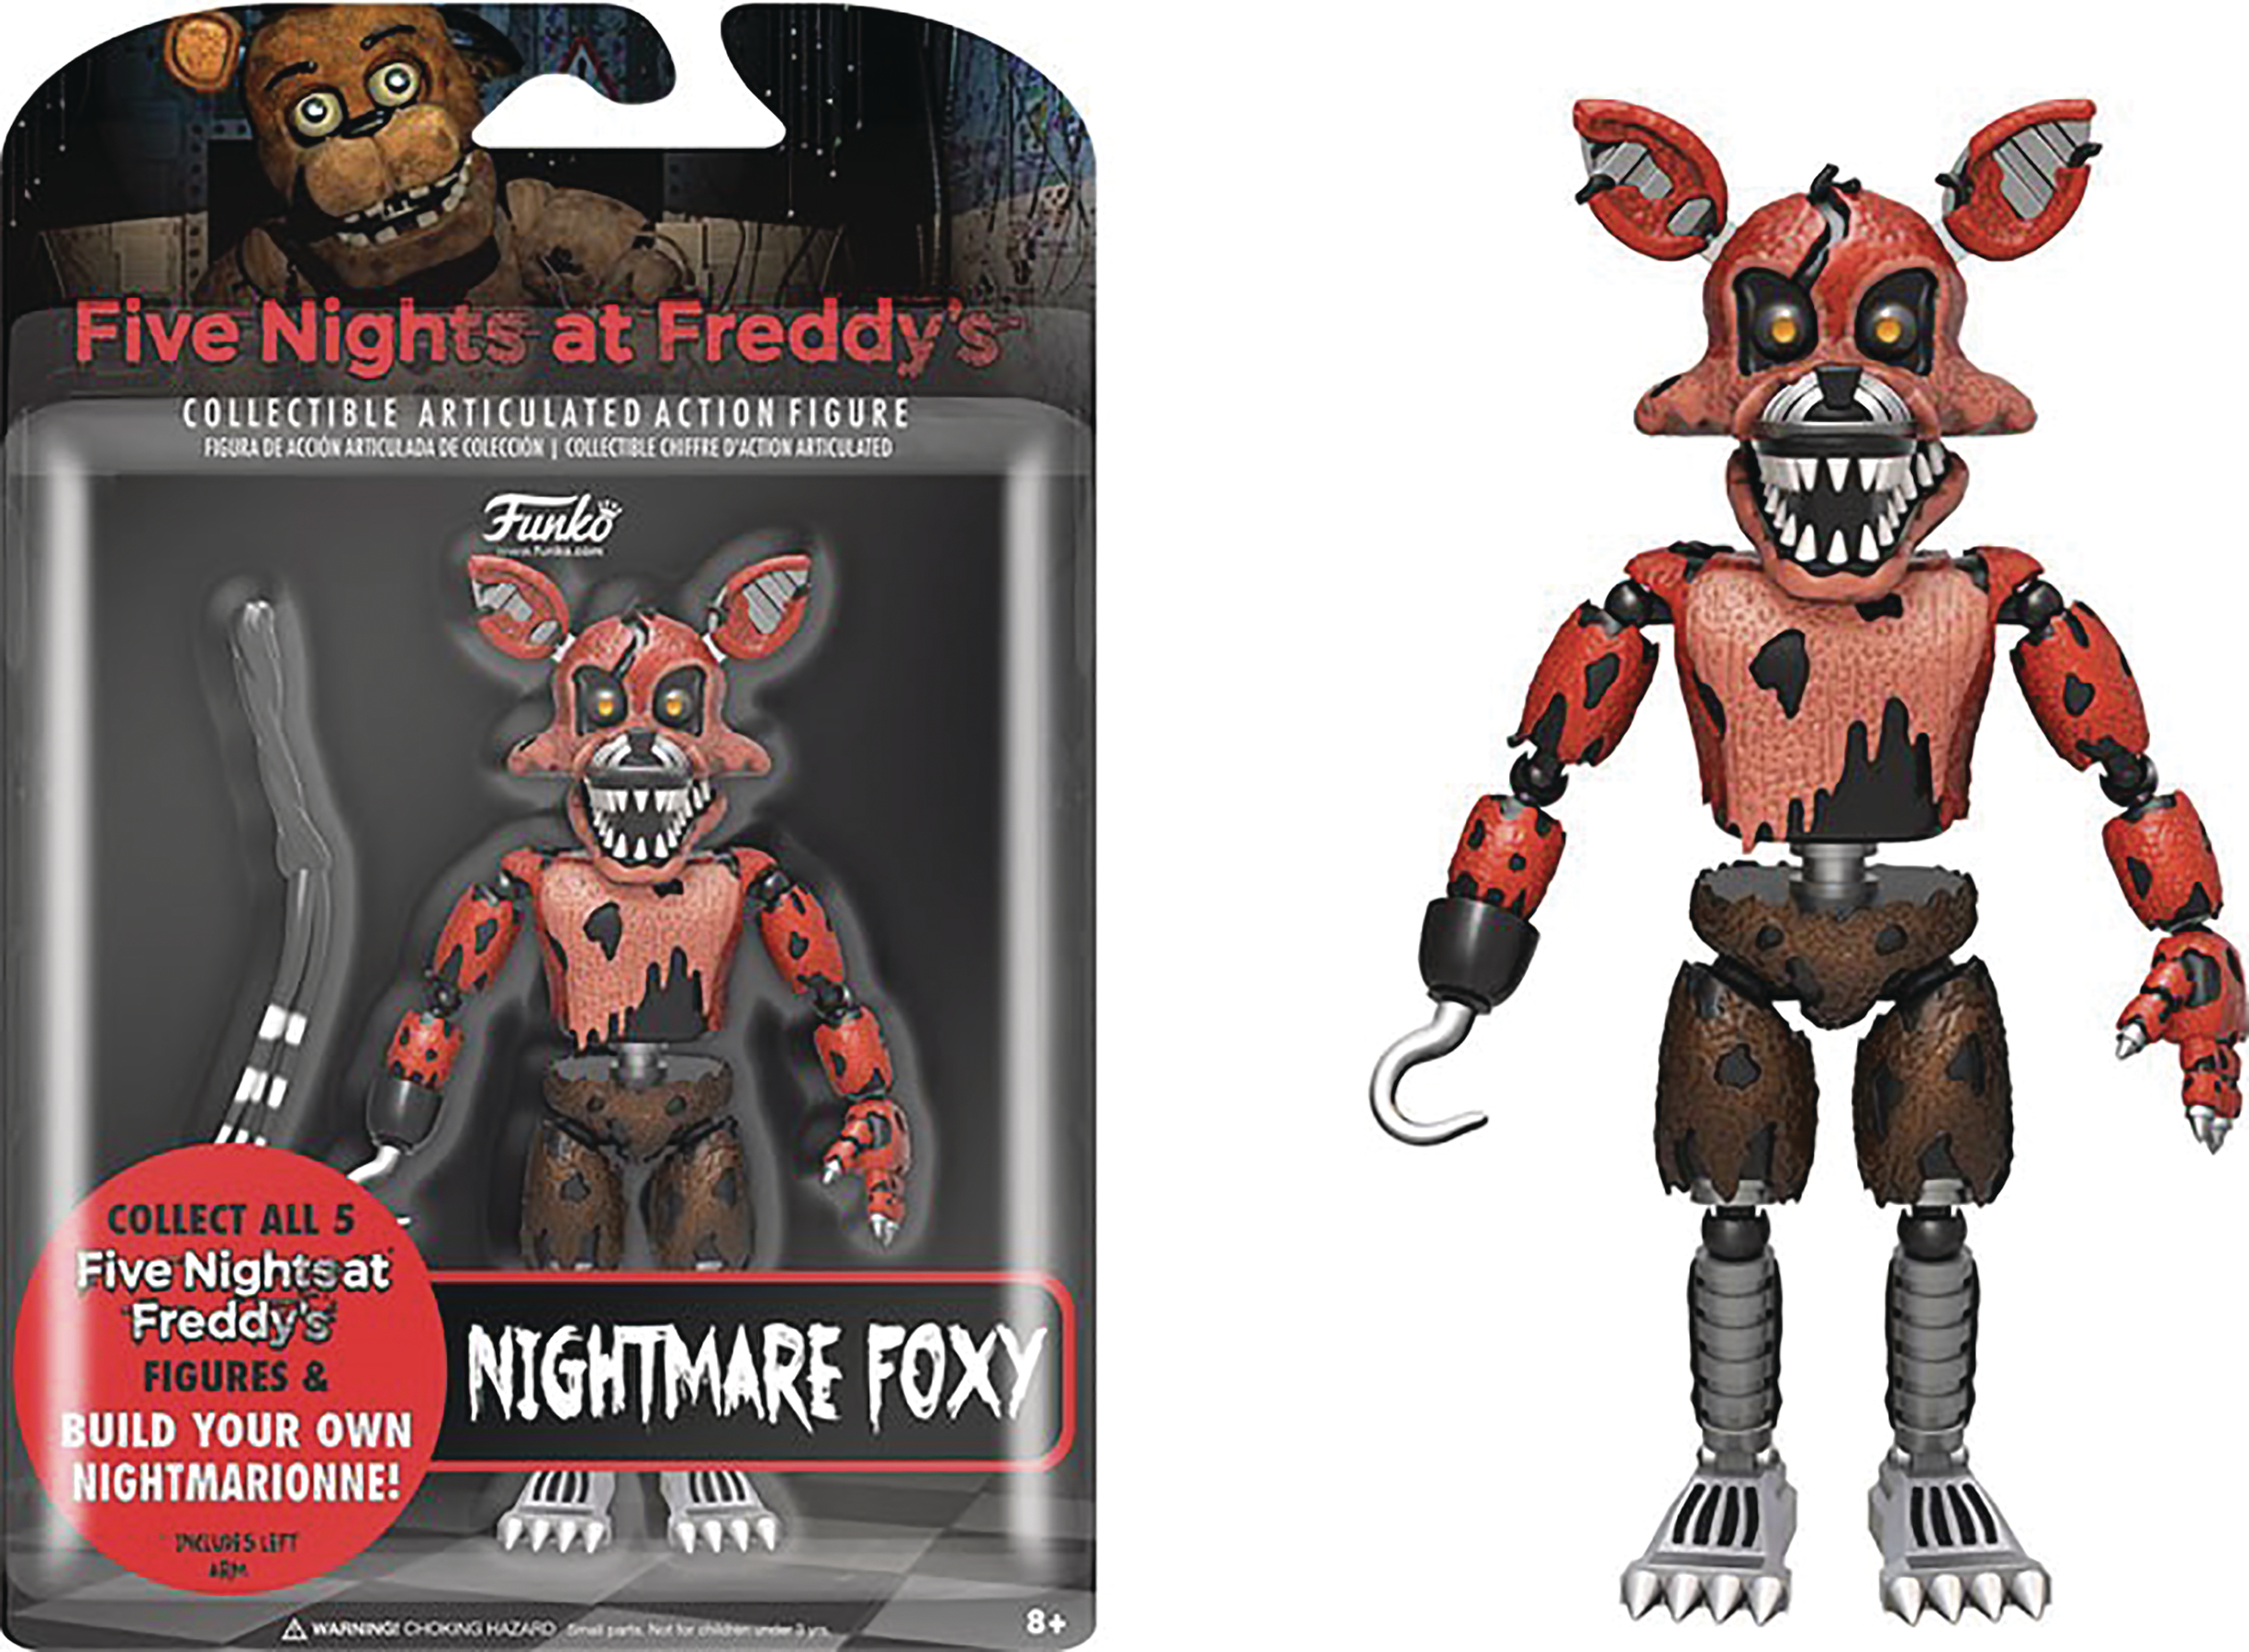 FIVE NIGHTS AT FREDDYS NIGHTMARE FOXY 5IN ACTION FIGURE